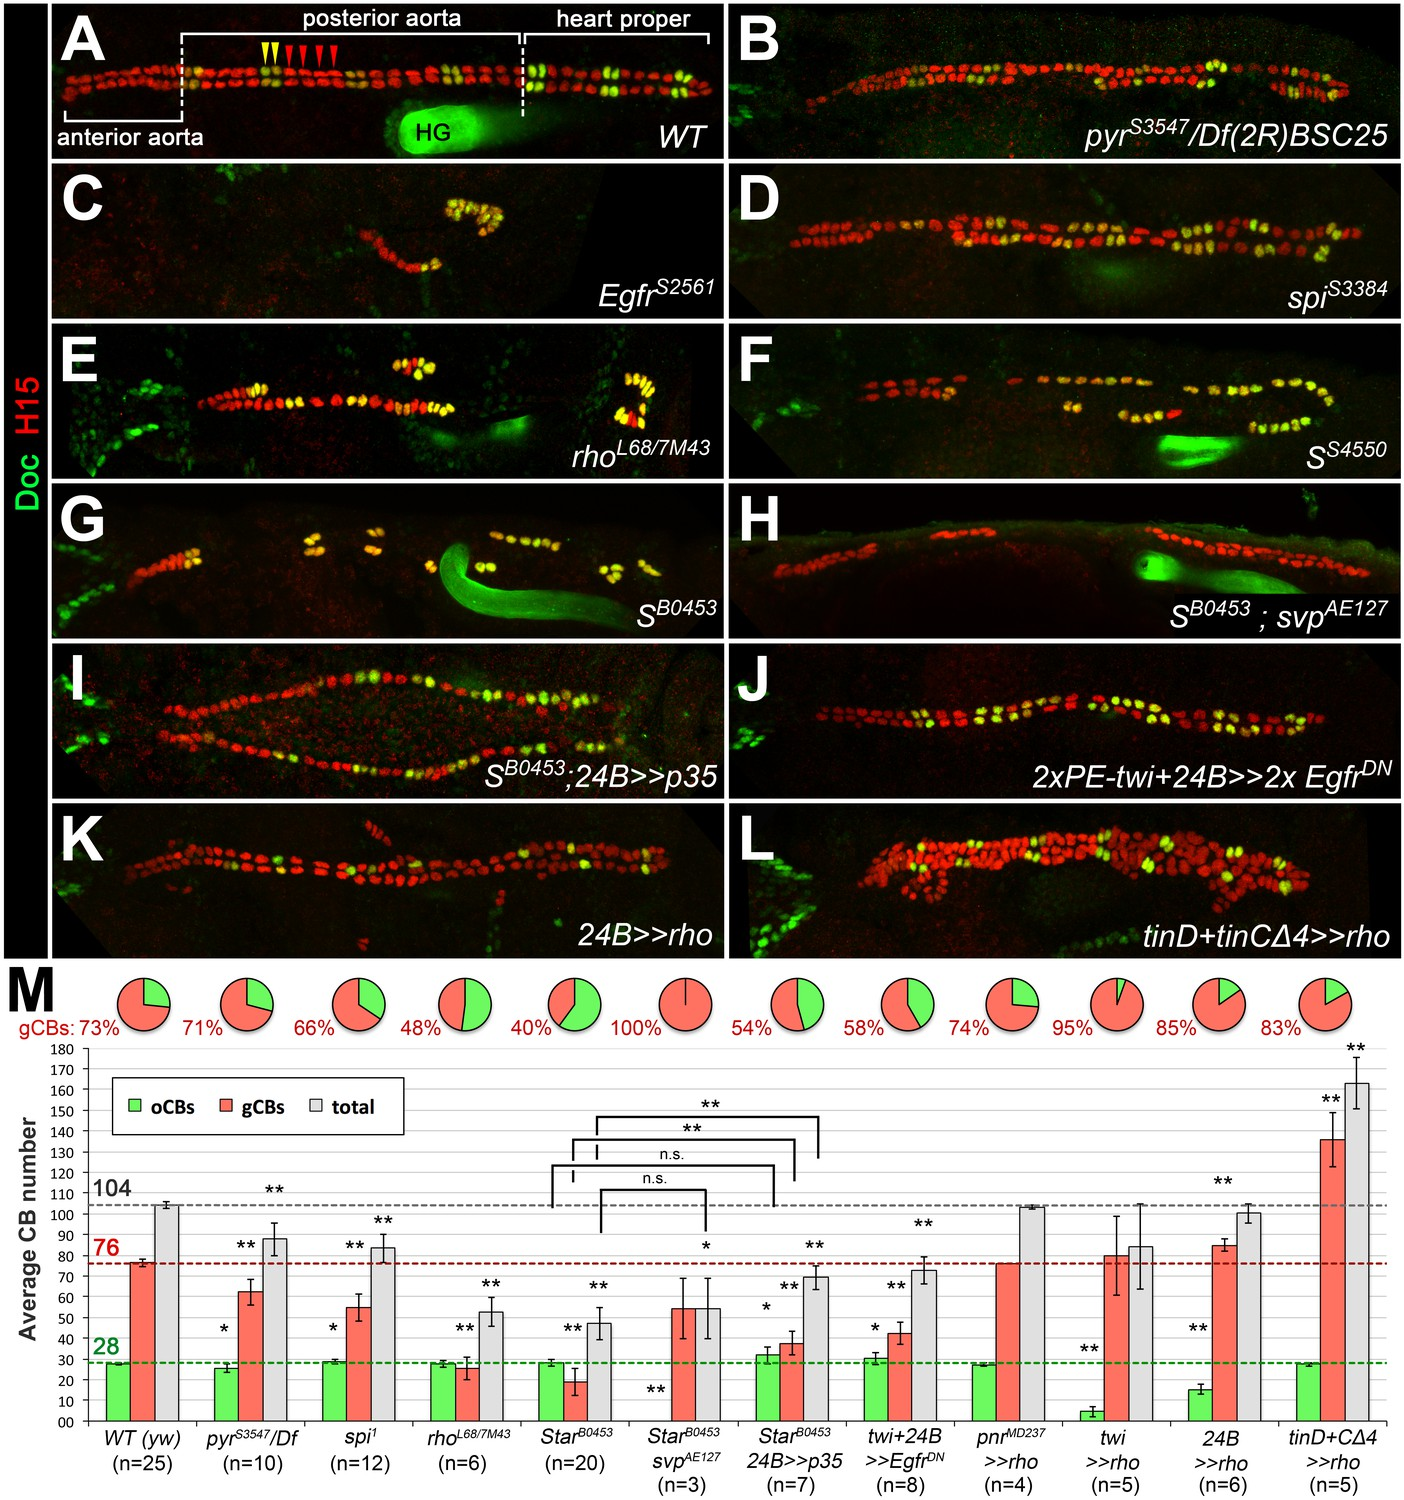 Genetic Manition Of Egf But Not Fgf Signaling Leads To Cardioblast Subtype Specific Heart Defects